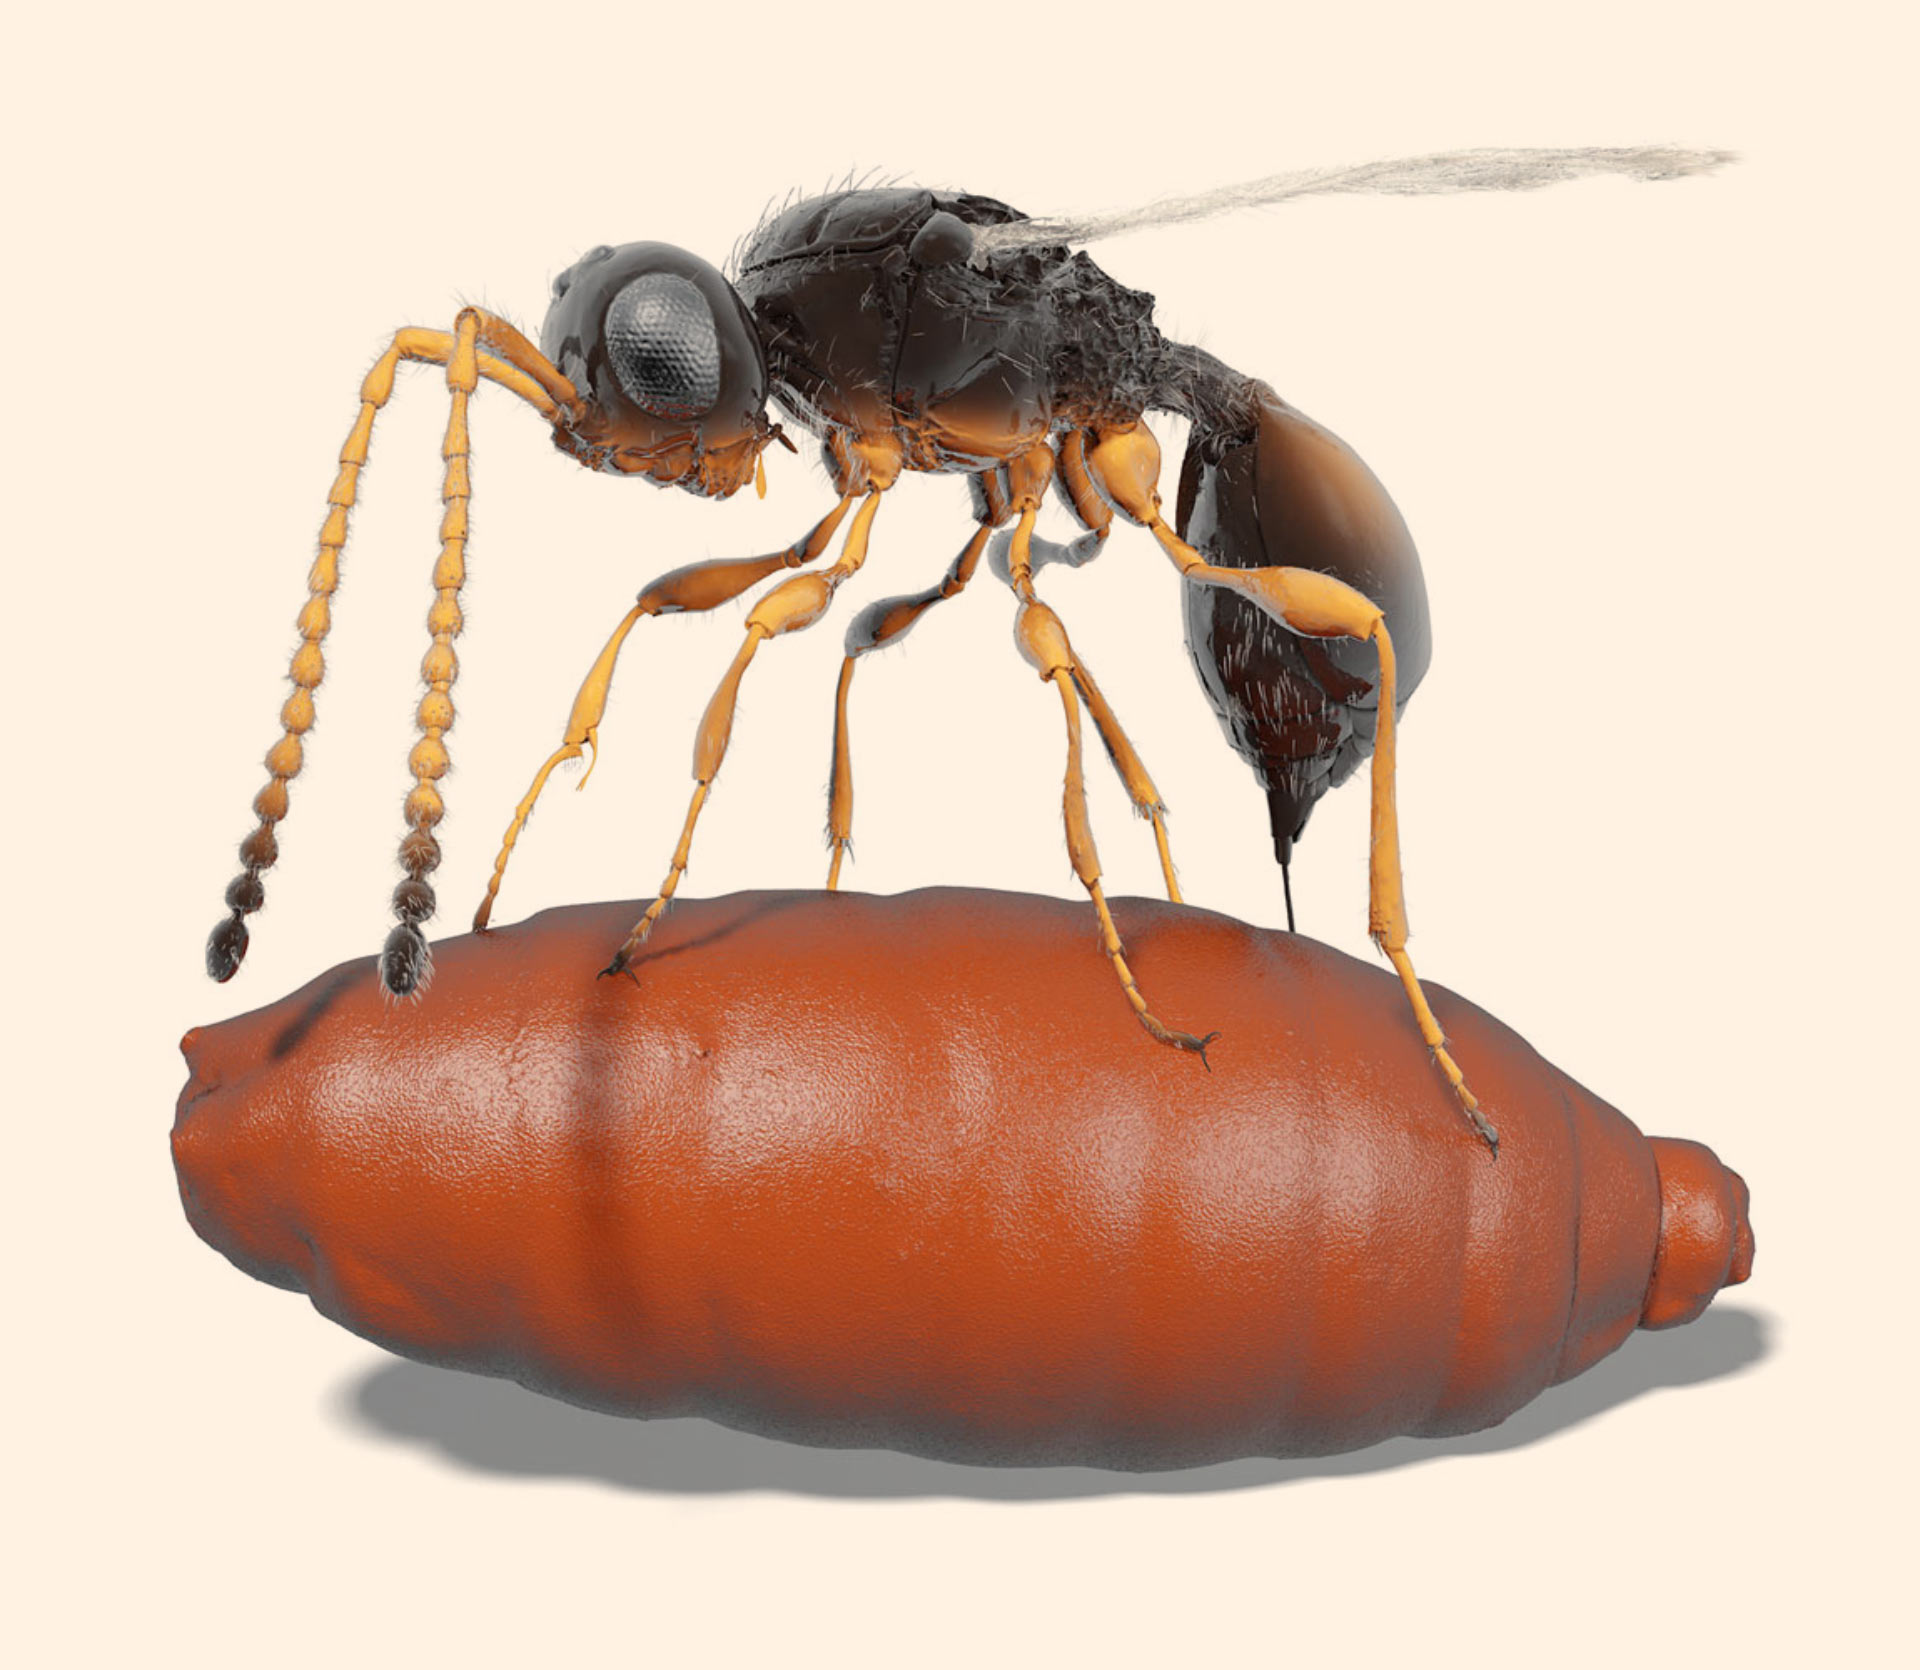 Extinct parasitic wasps found preserved within fly pupae fossils